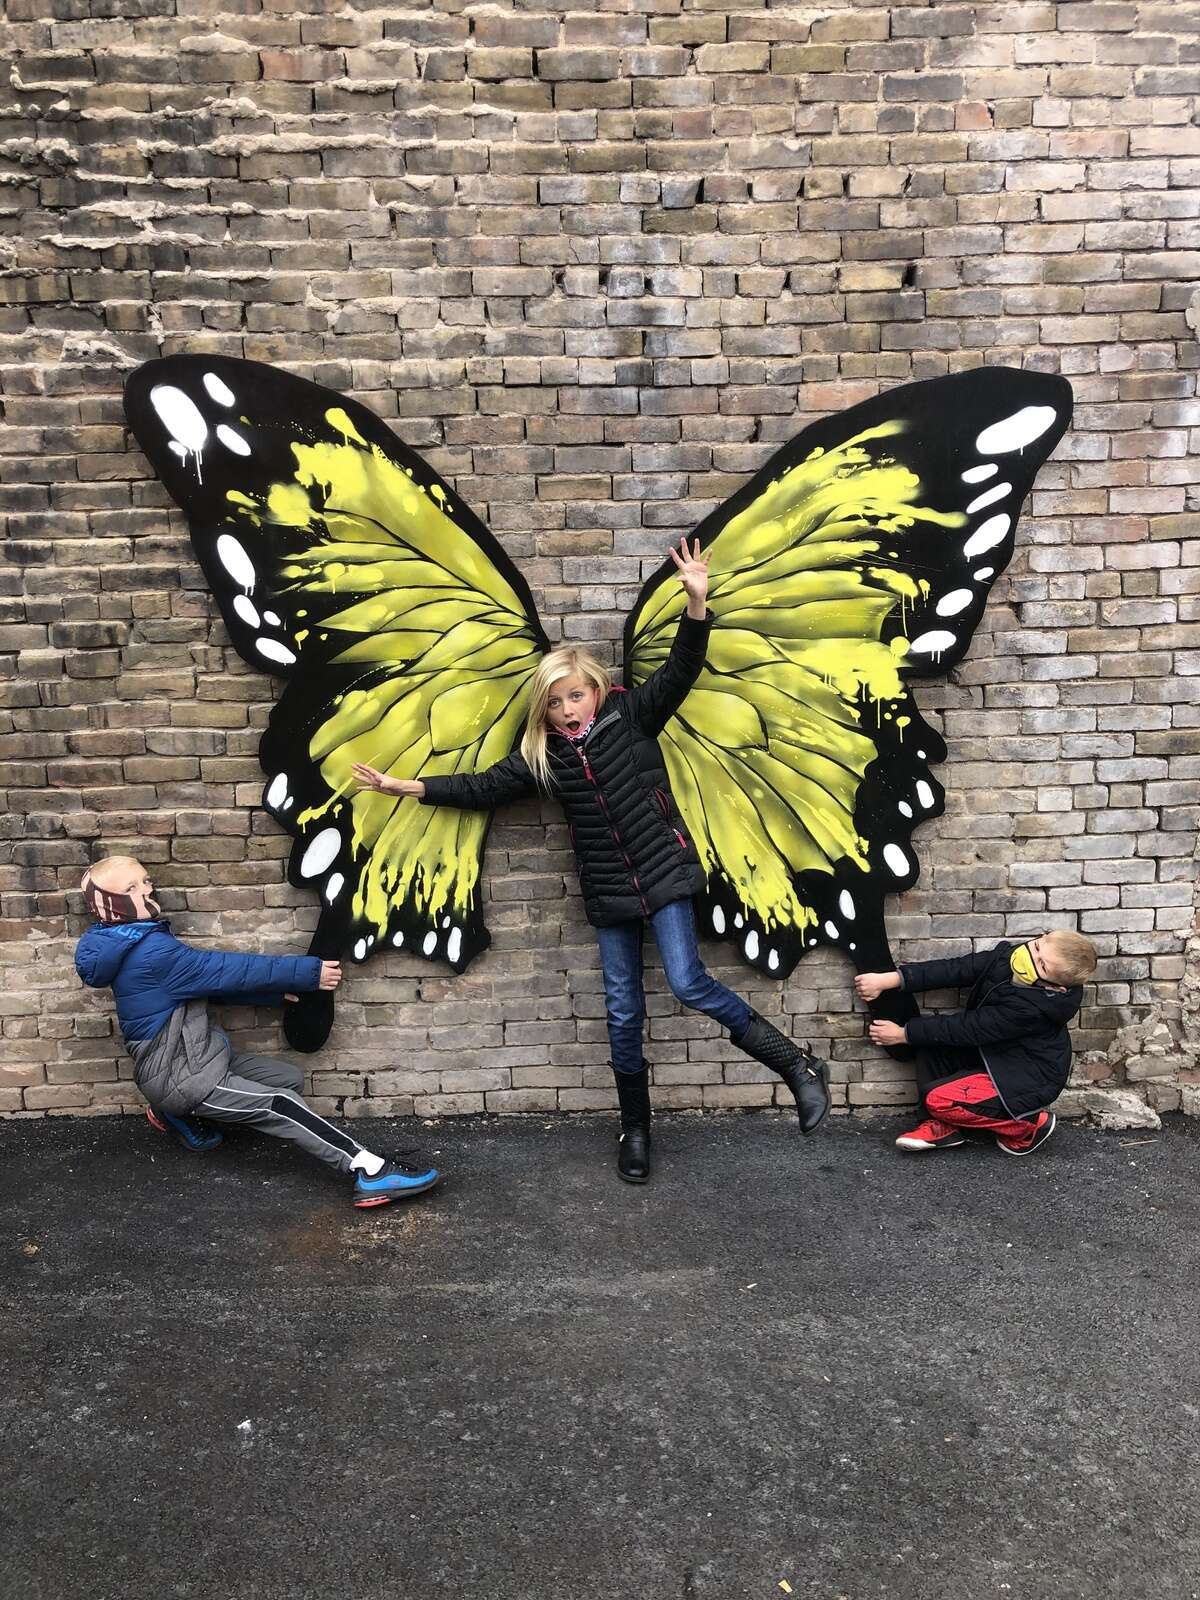 Butterfly flight turbulence from three children by the third set of wings.